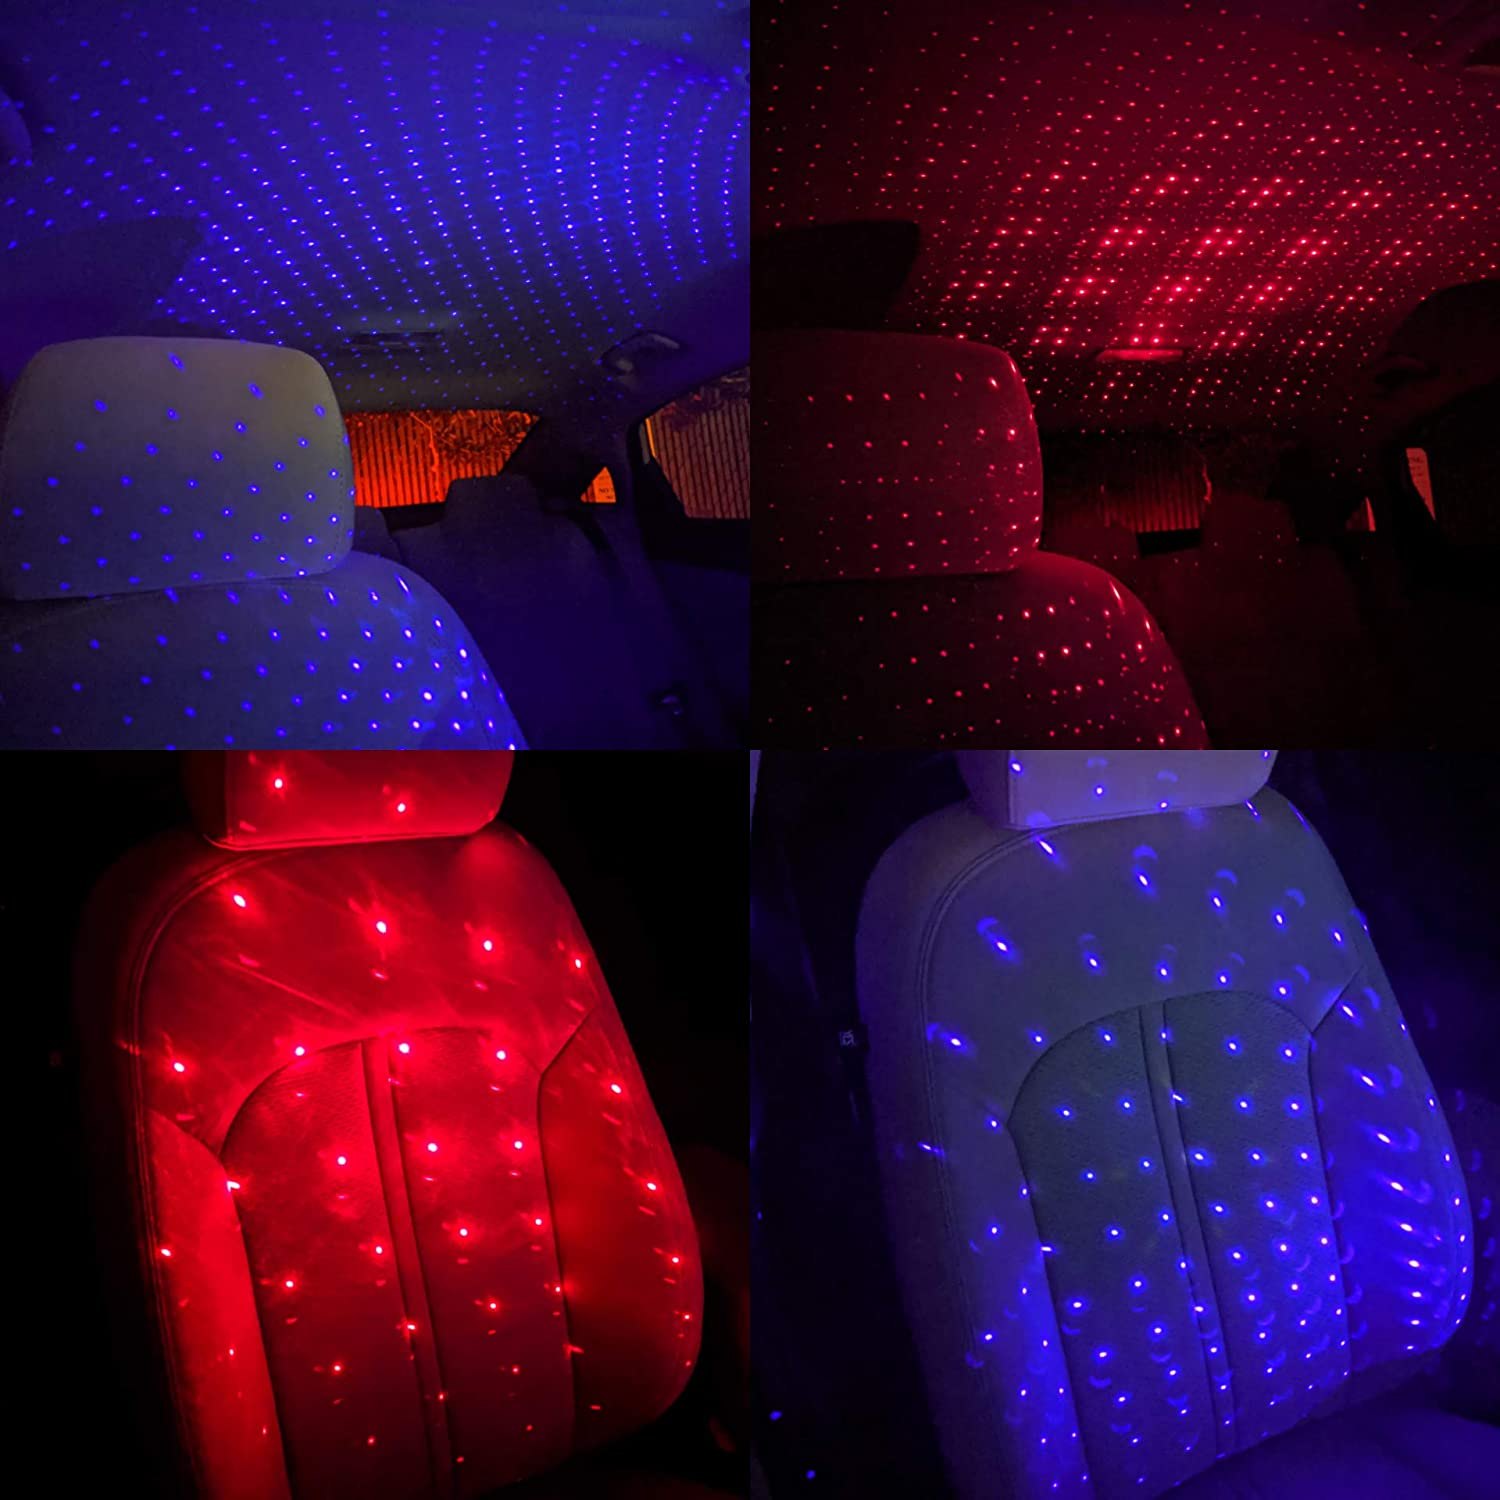 2PCS USB Star Night Light, 2 Colors - 7 Lighting Effects, Auto Roof Star Lights, Romantic Decorations Special Night Light for Bedroom, Car, Party, Ceiling and More- Plug and Play (Blue & Red)